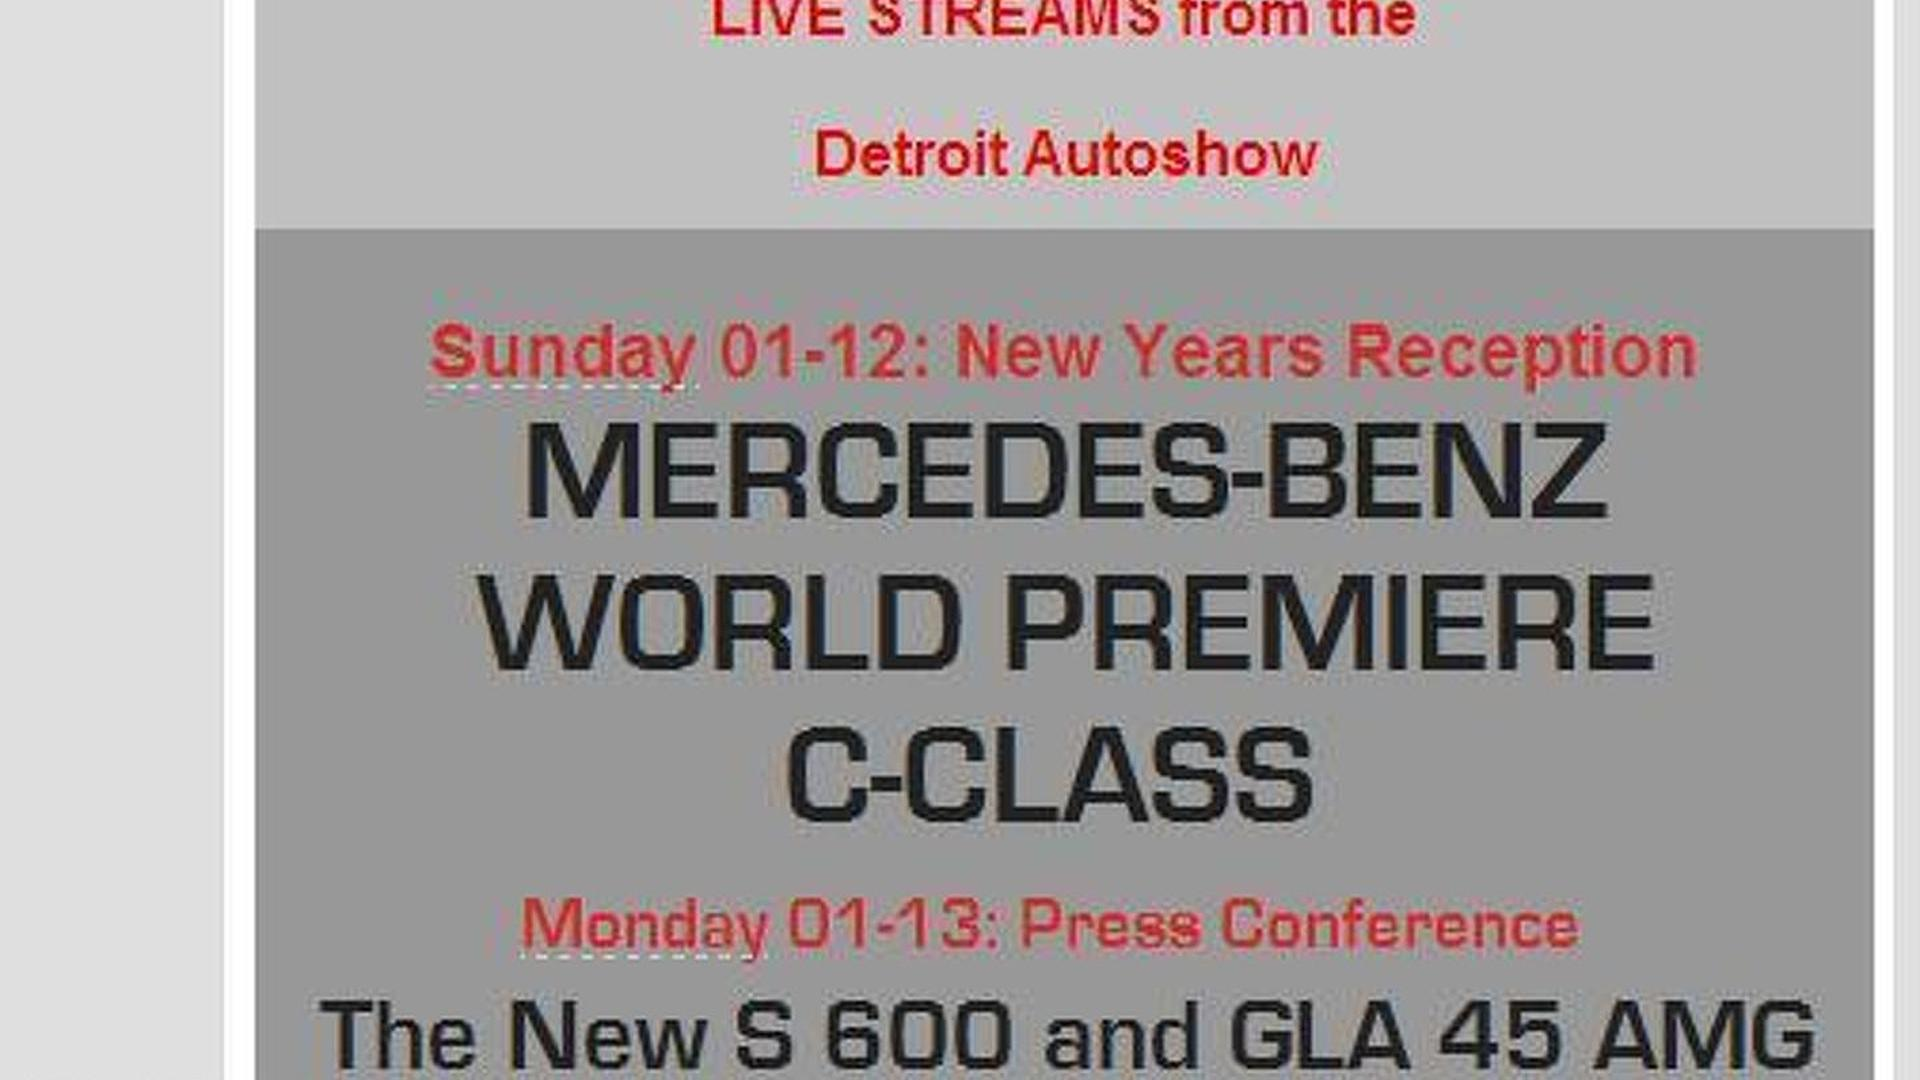 2015 Mercedes S600 confirmed for Detroit with 530 HP